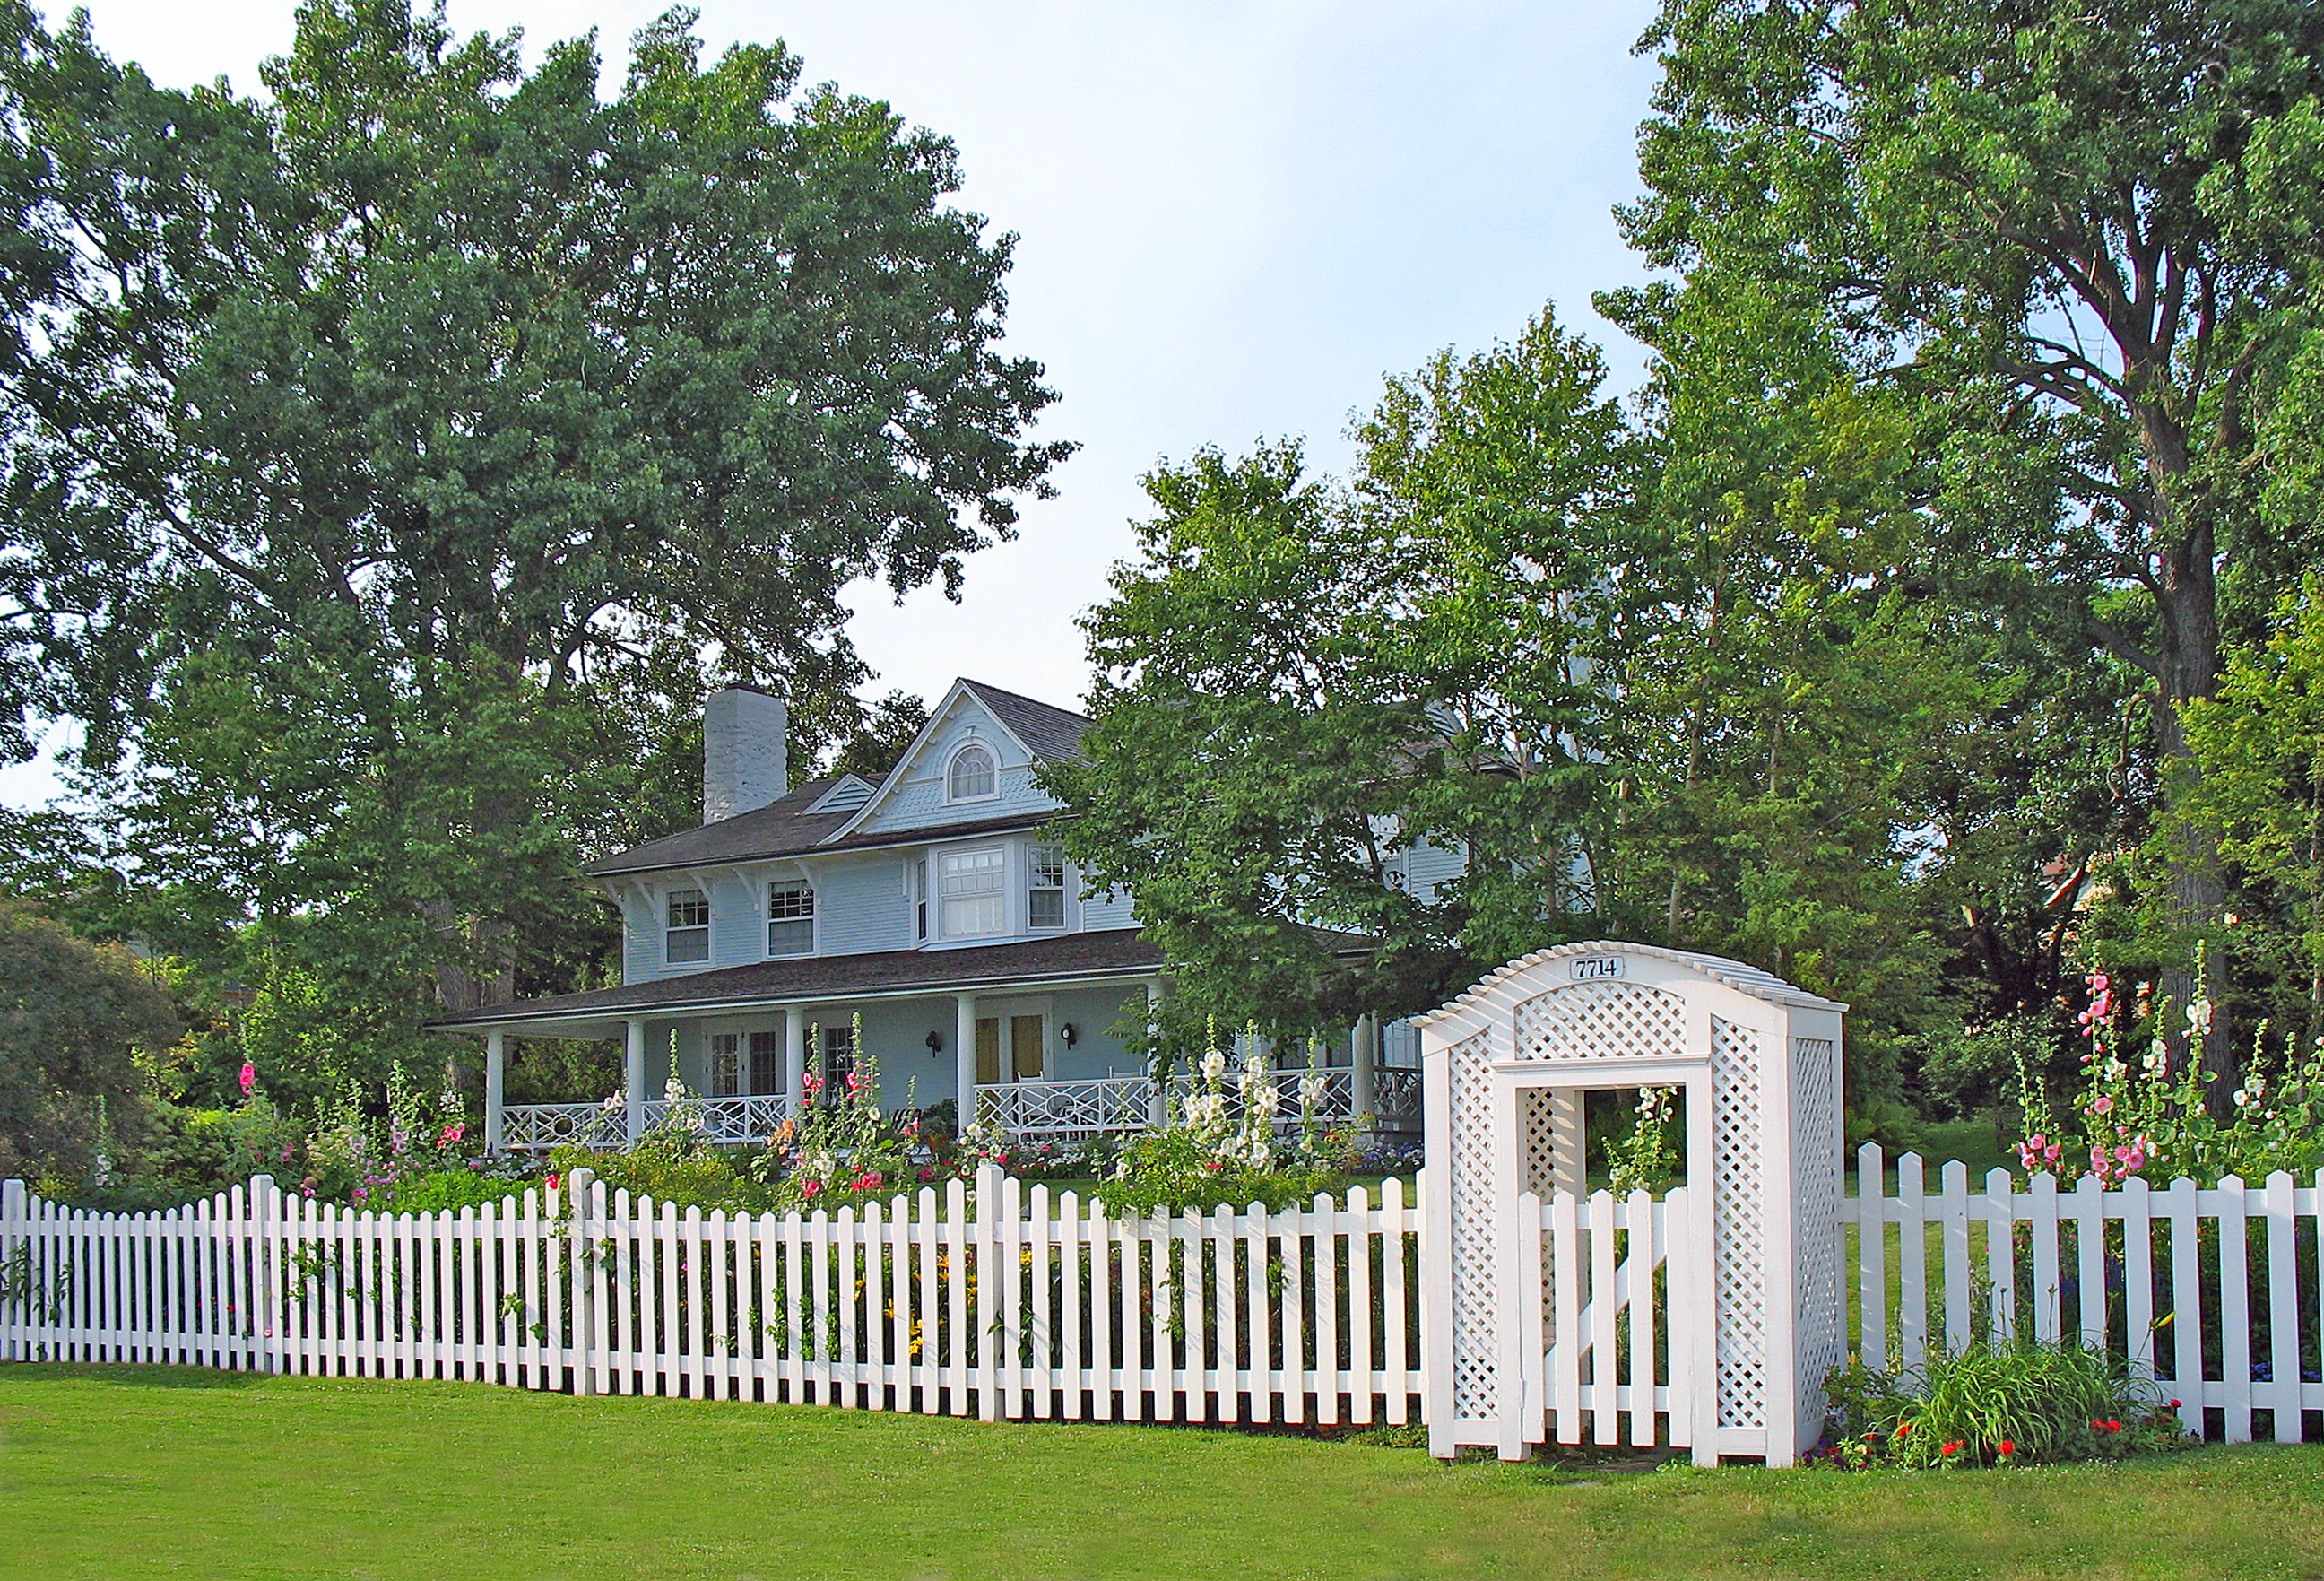 Finding the perfect home suburban finance for Find the perfect house